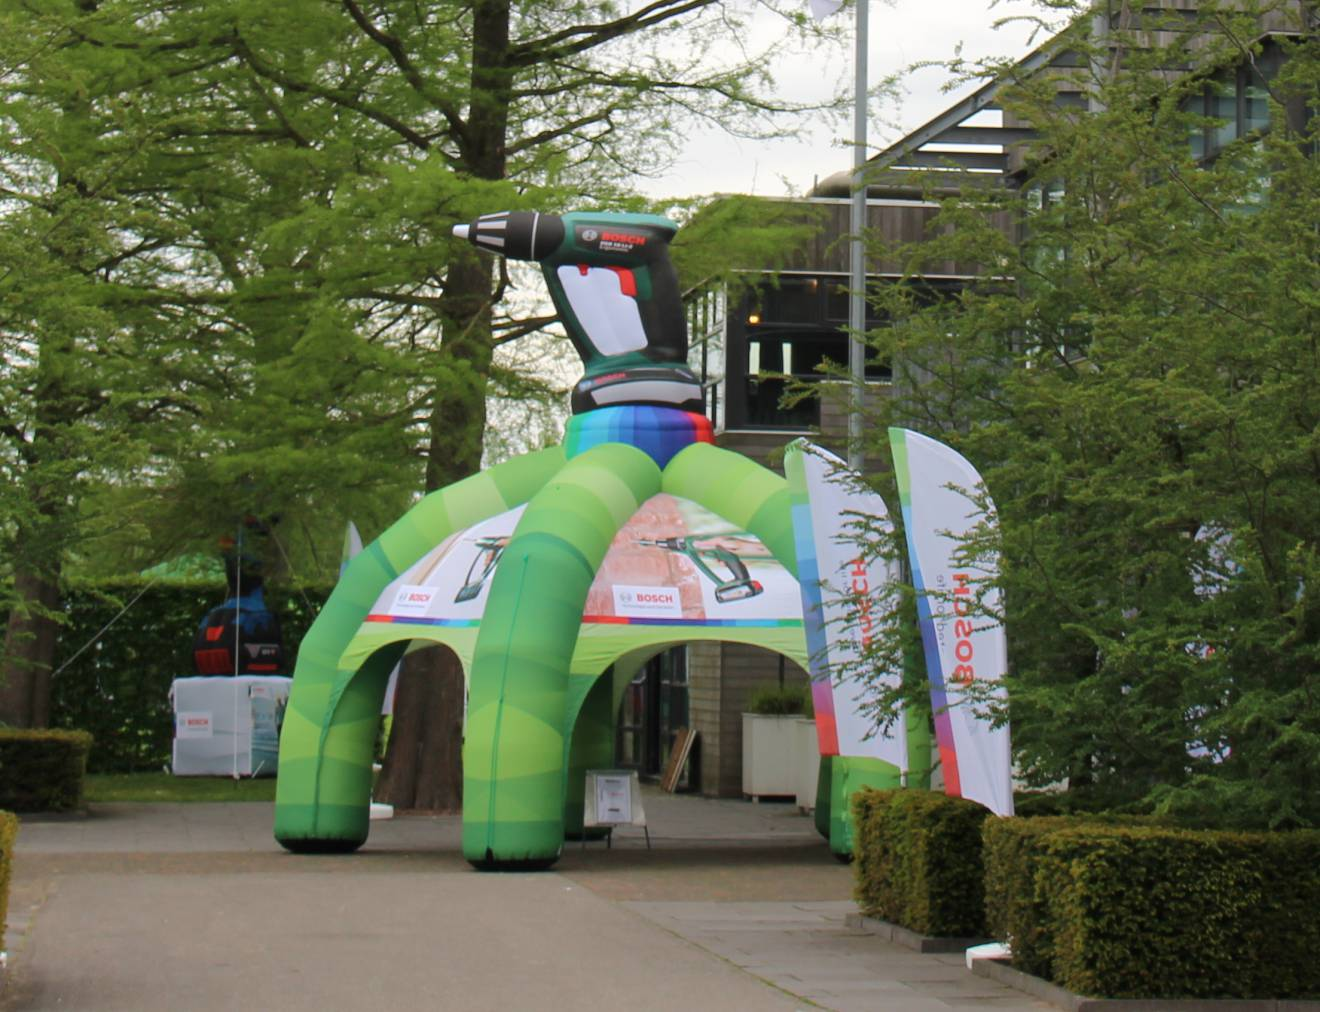 Giant inflatable tenten  Bosch, tenten X-Treme Creations